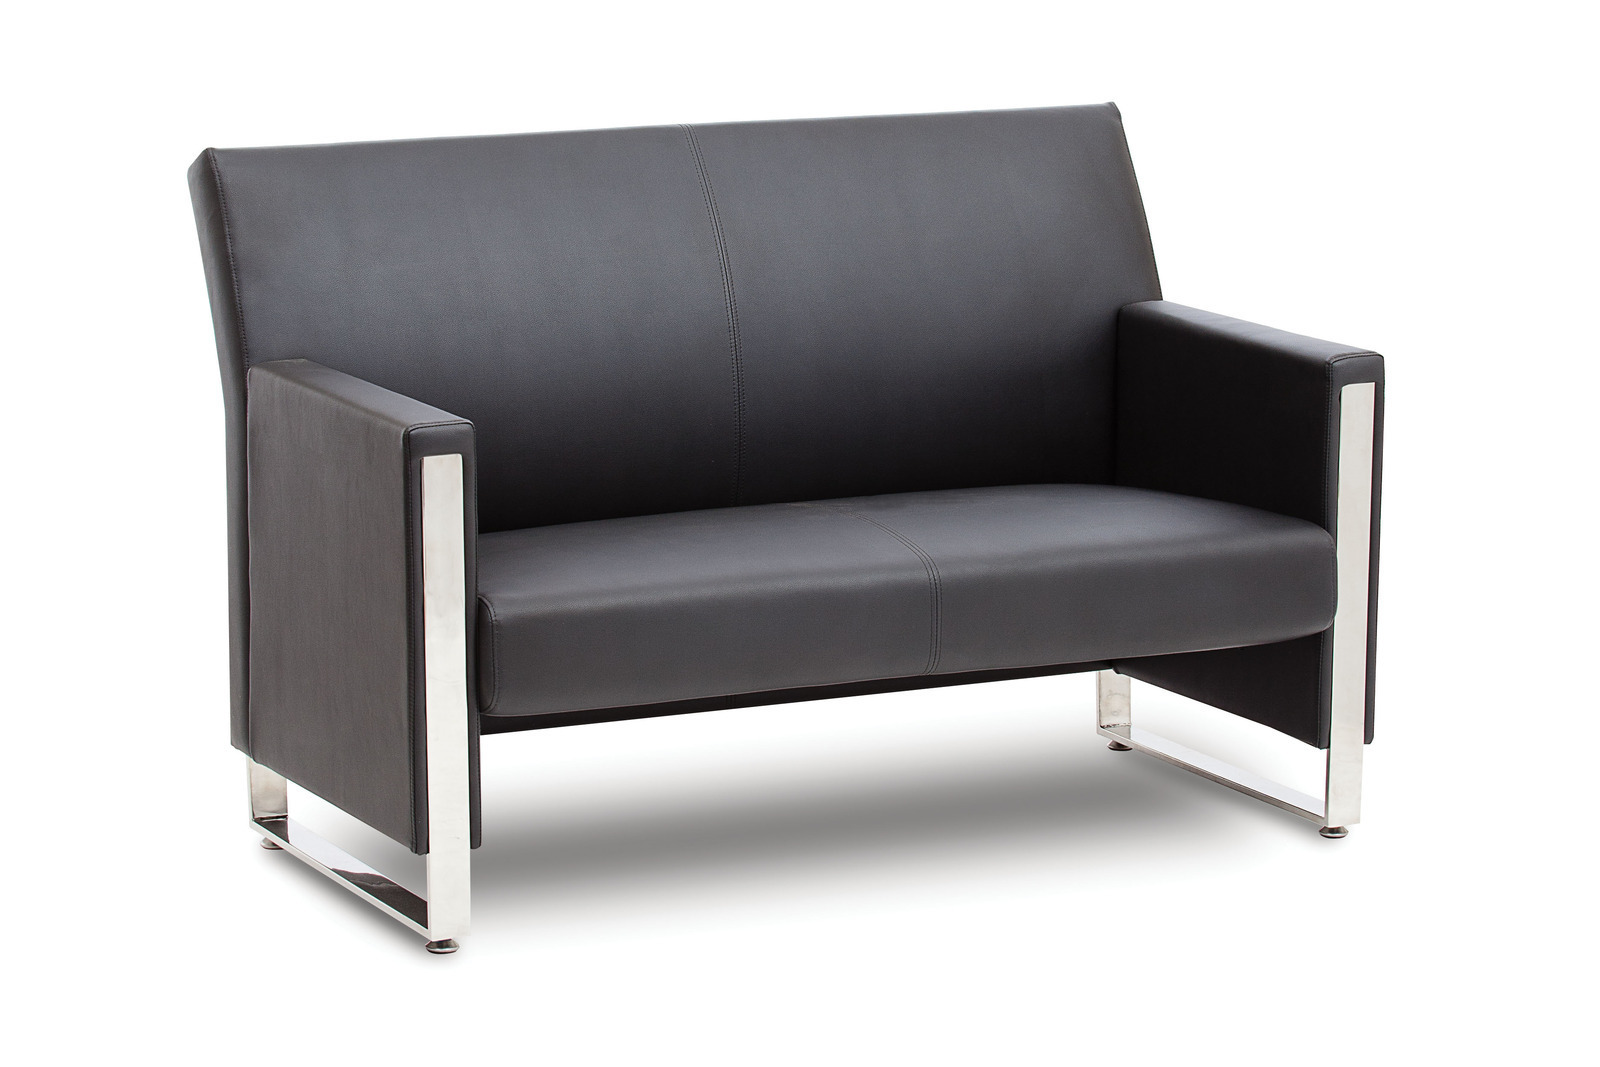 Metropol 2 Seater Reception Lounge Sofa Chair  Office Stock